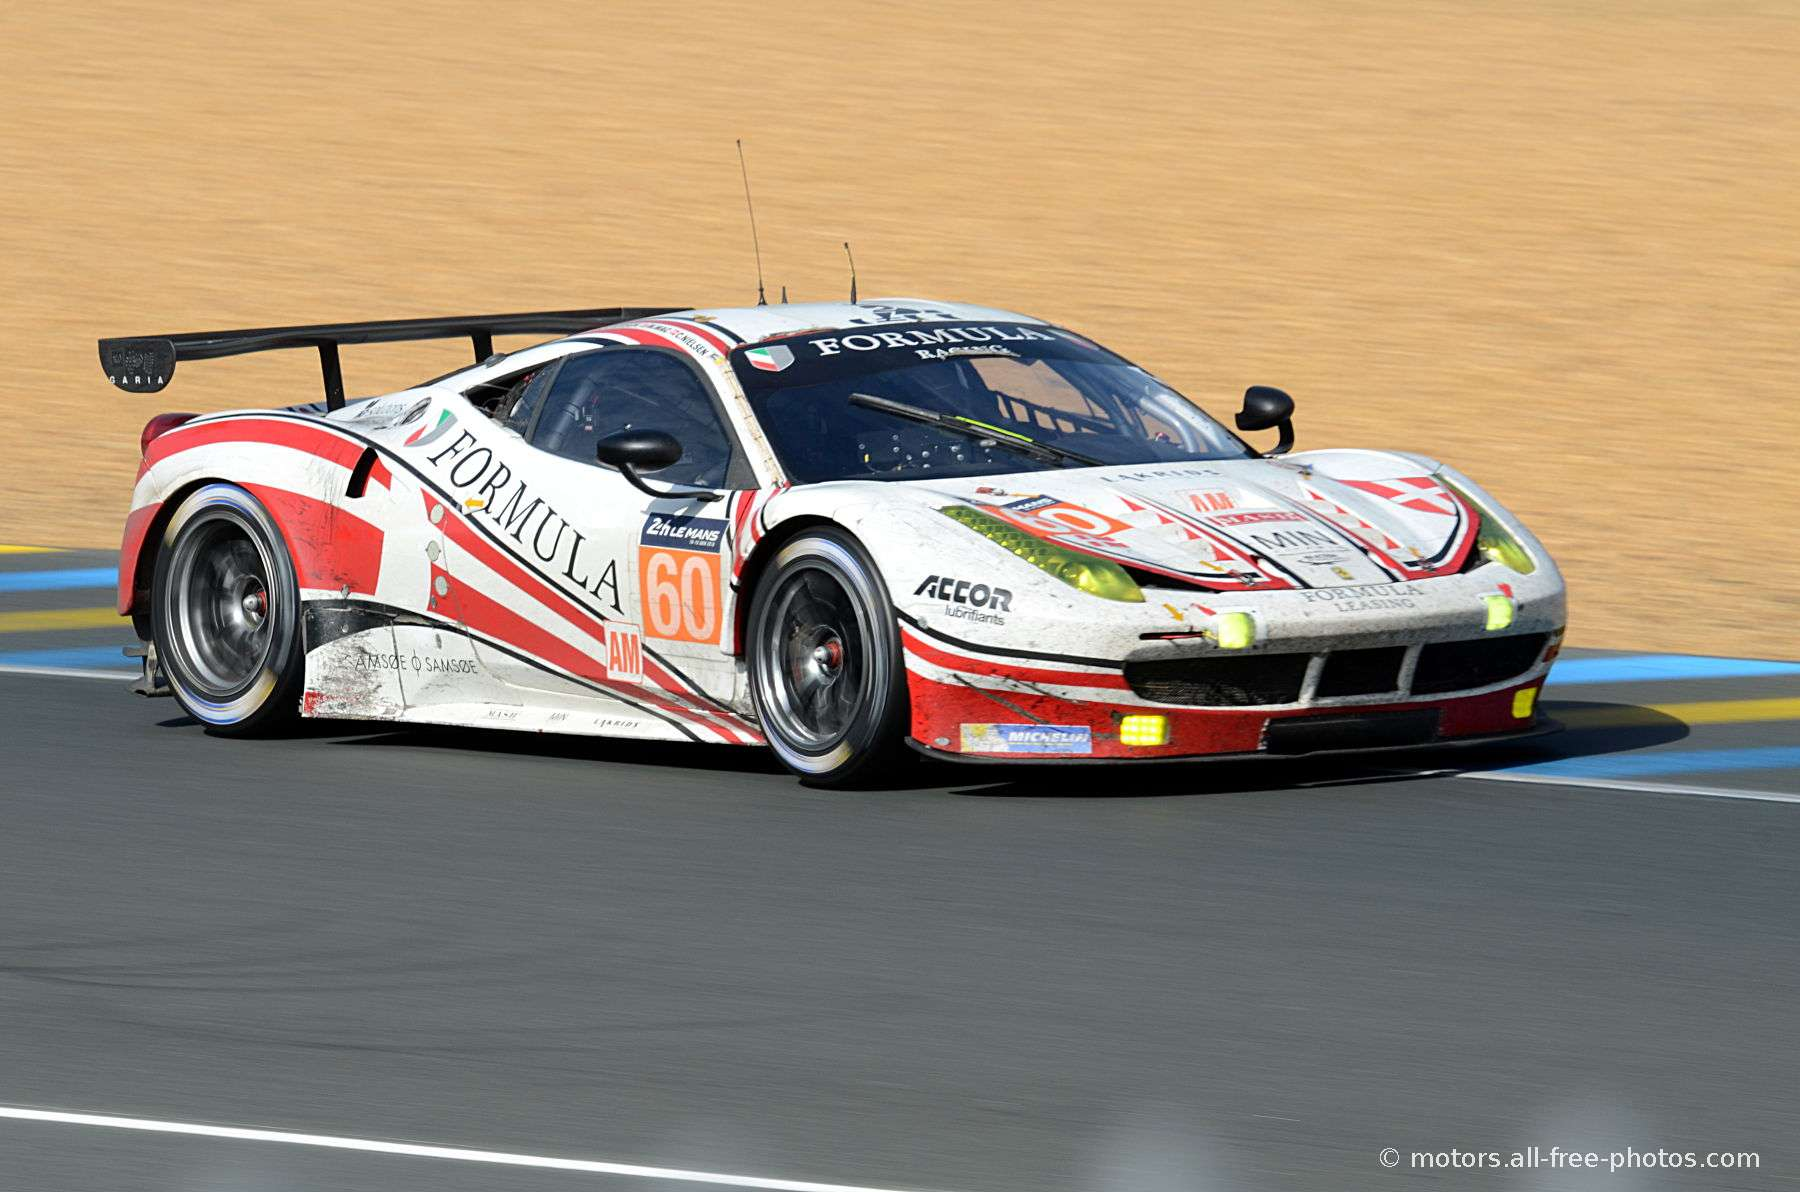 Ferrari 458 Italia - Team Formula Racing